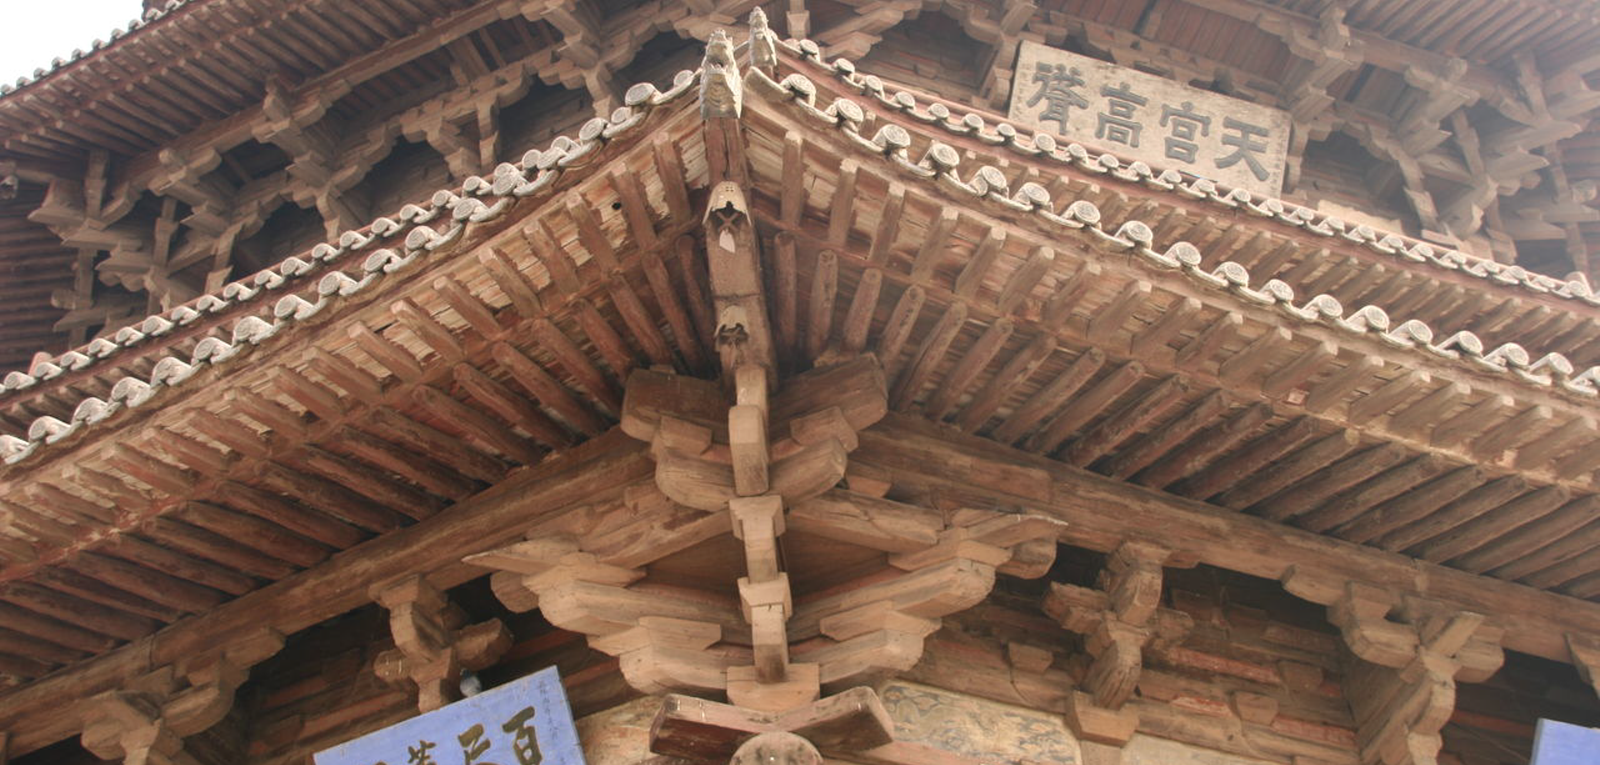 These Ingenious 2 500 Year Old Chinese Wood Joints Make